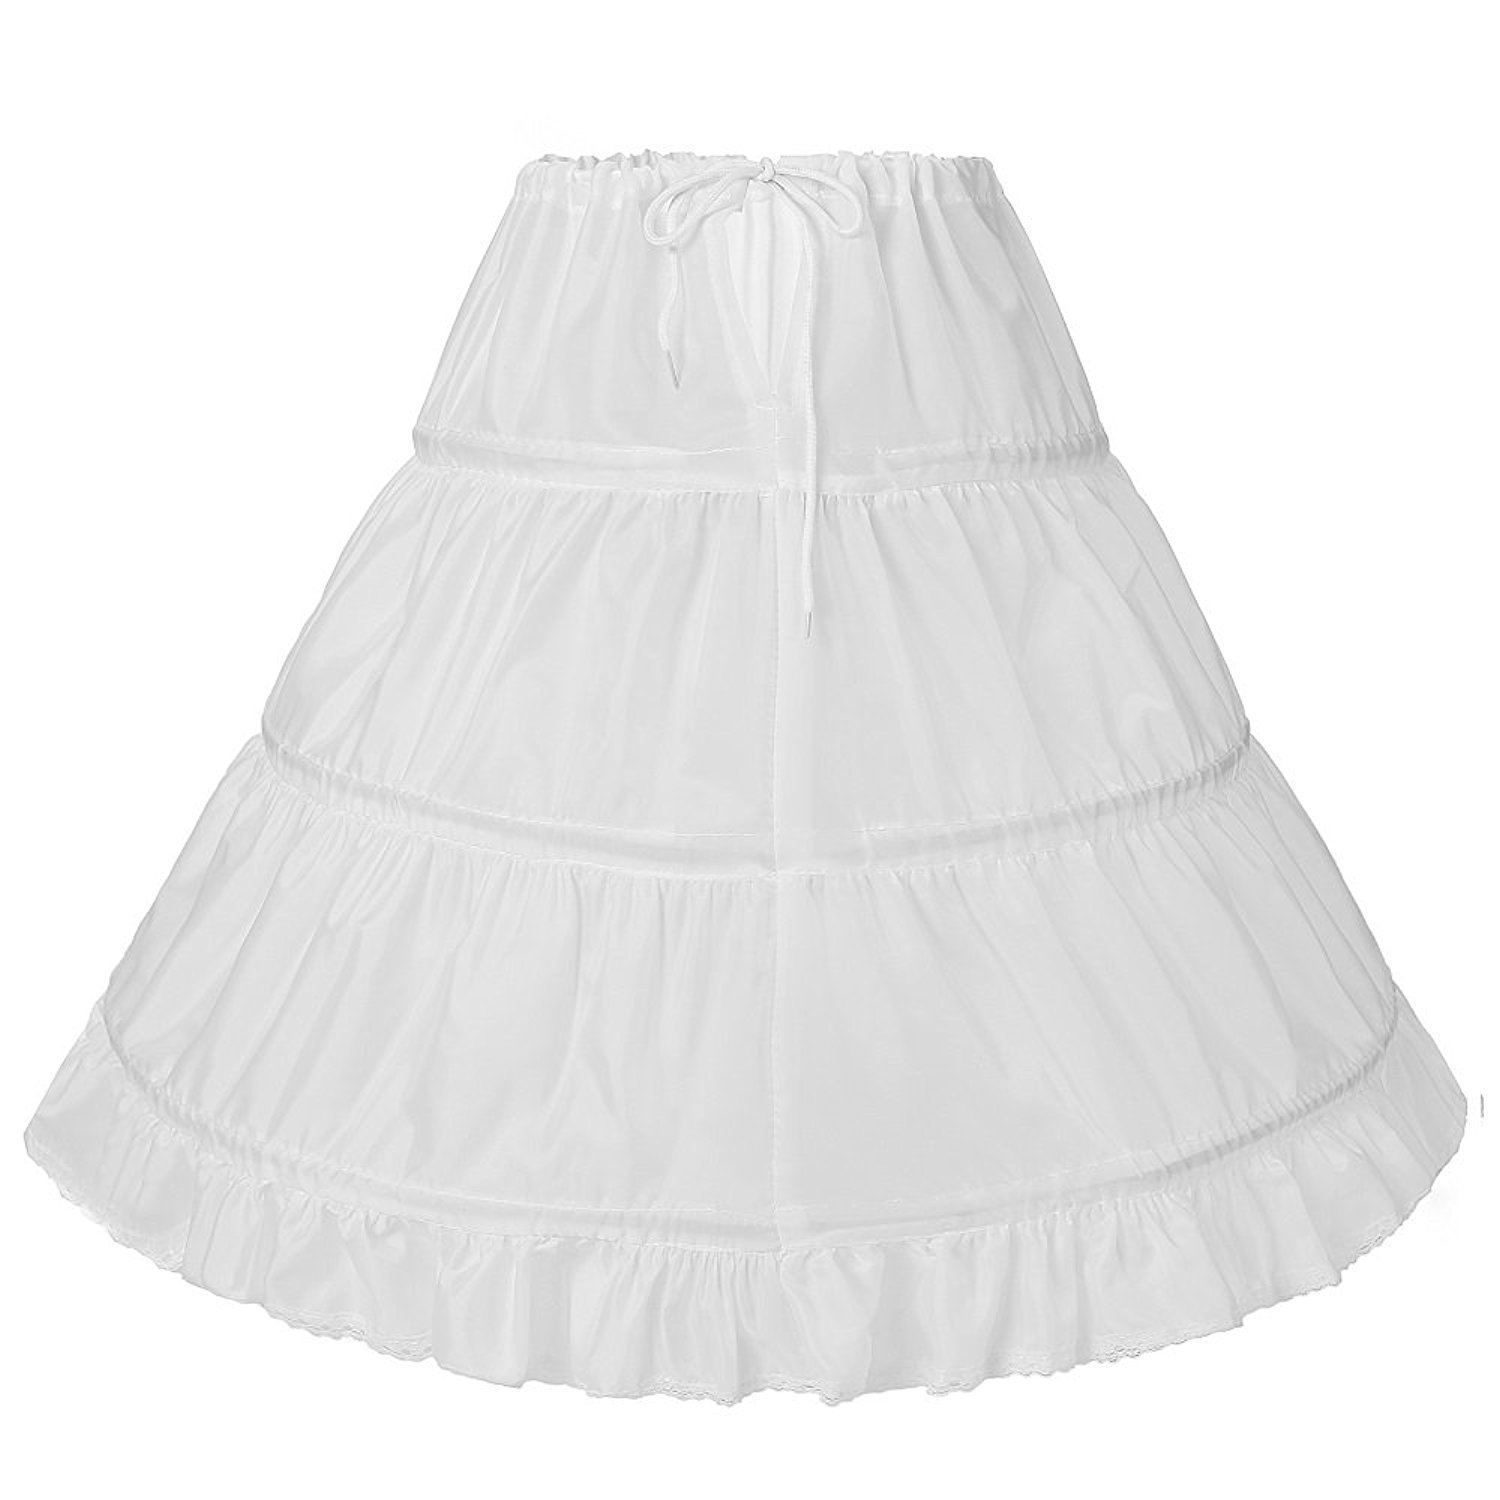 Vicokity Girls 3 Hoops Underskirt Petticoat Long Crinoline for Kids Flower Girl Dress